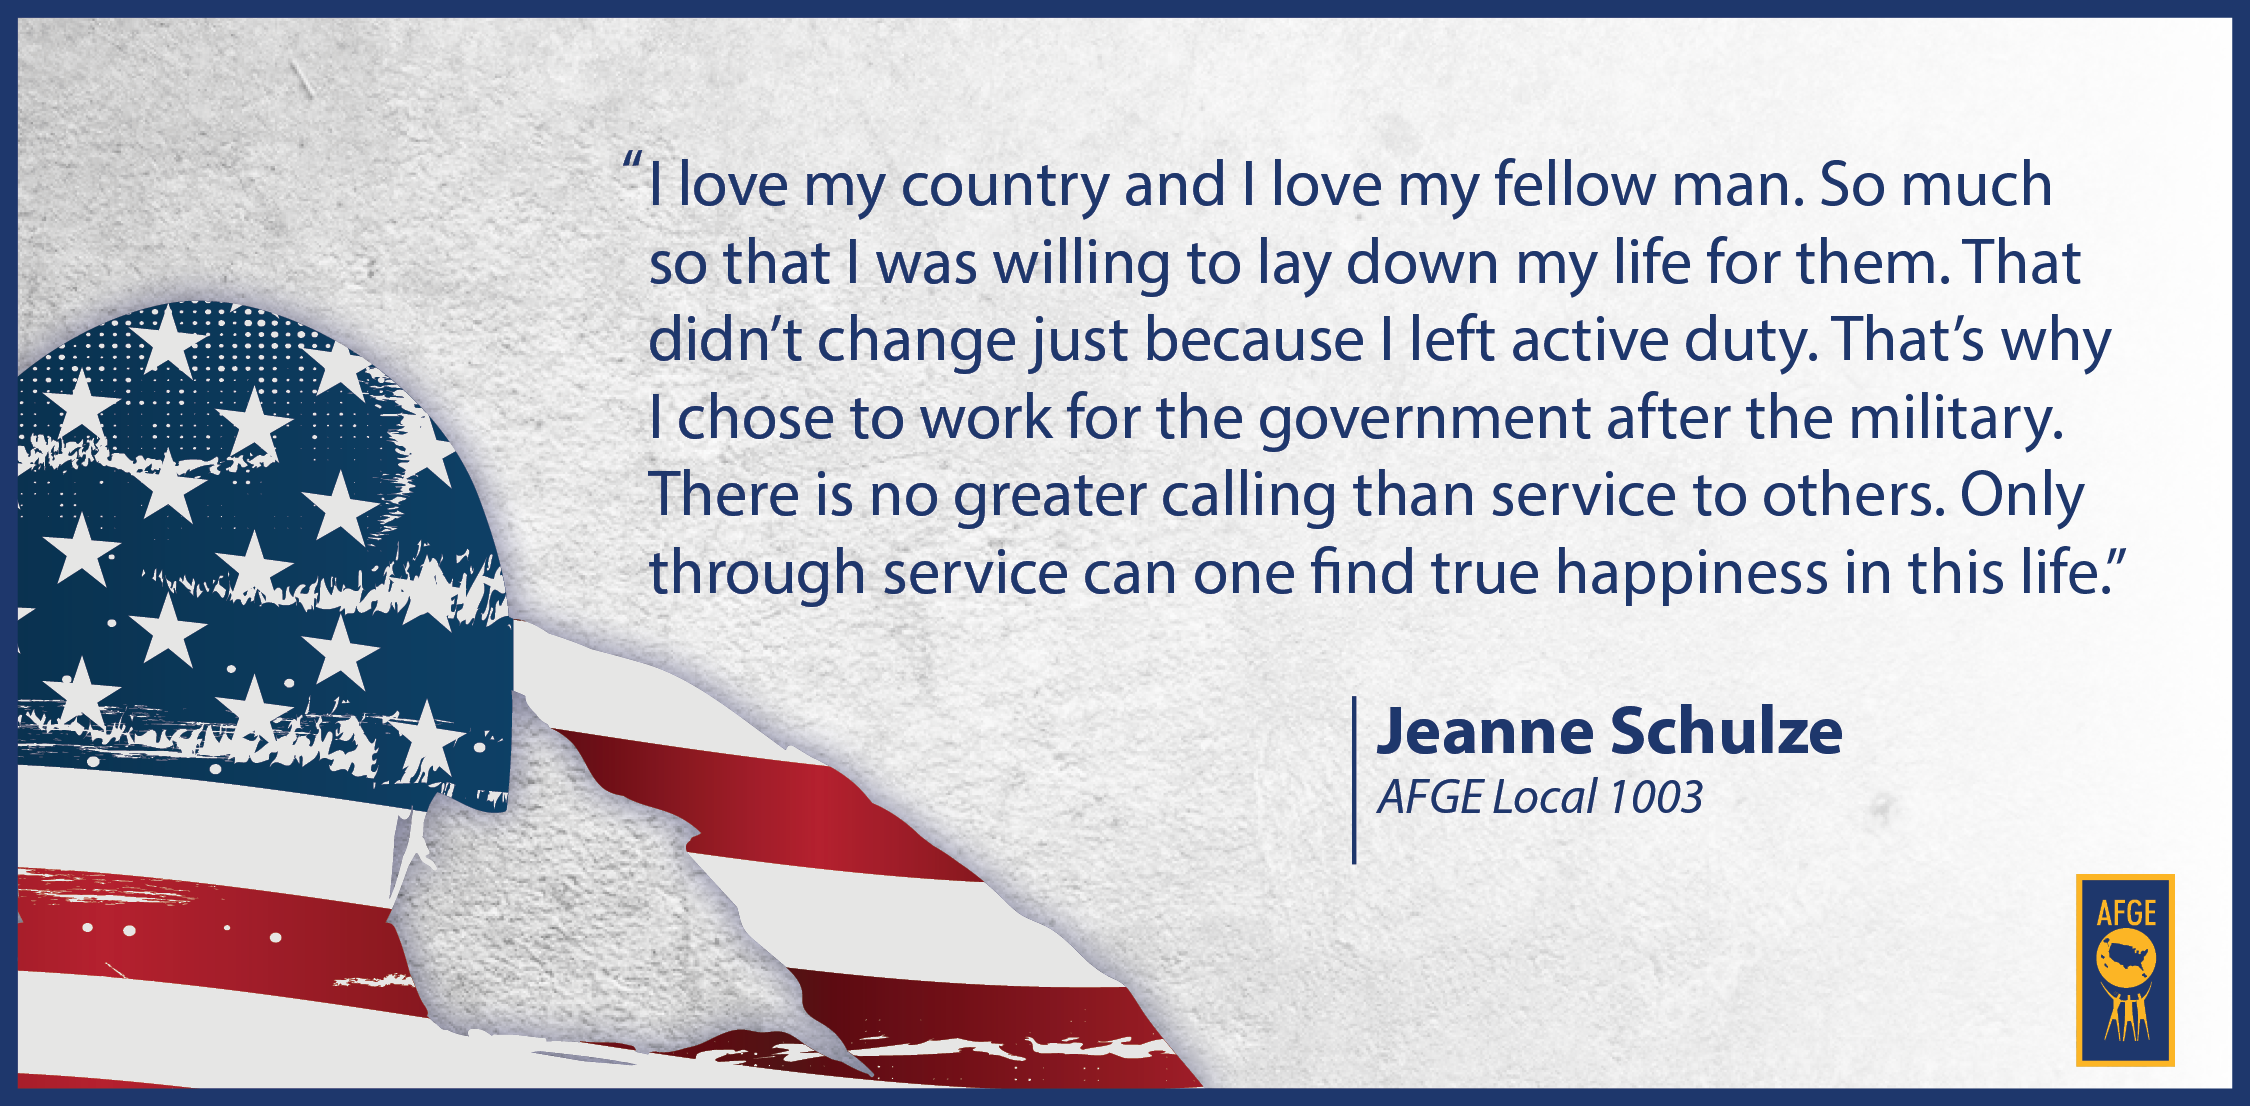 Quote from Jeanne Schulze of AFGE Local 1003